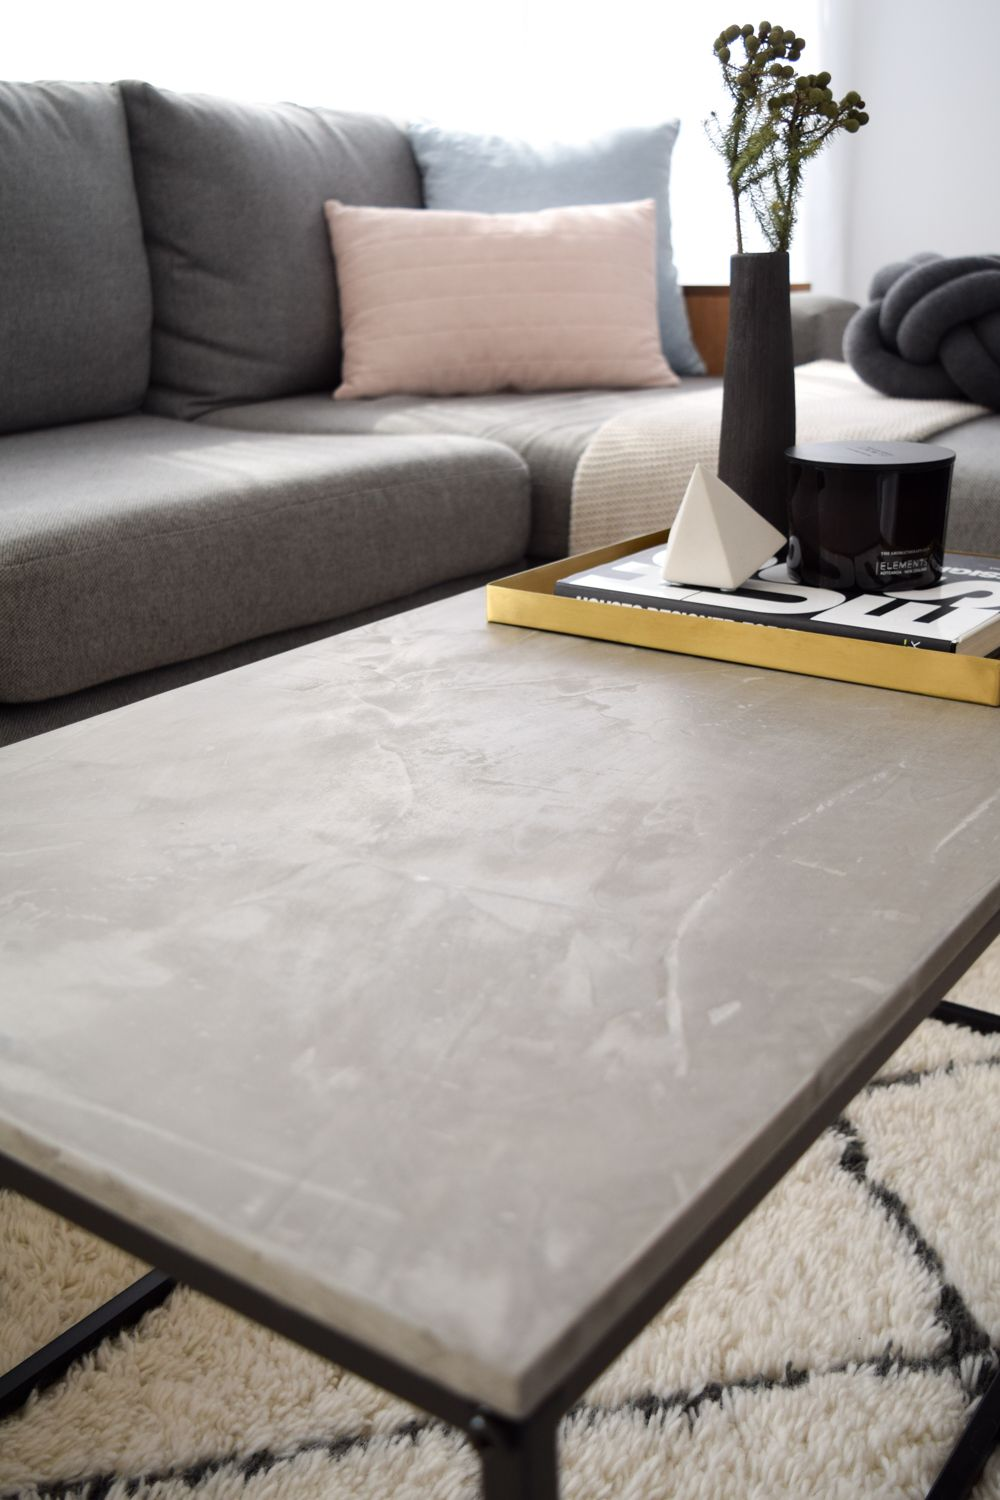 Kmart hack coffee table: Cheap veneer to luxe concrete top